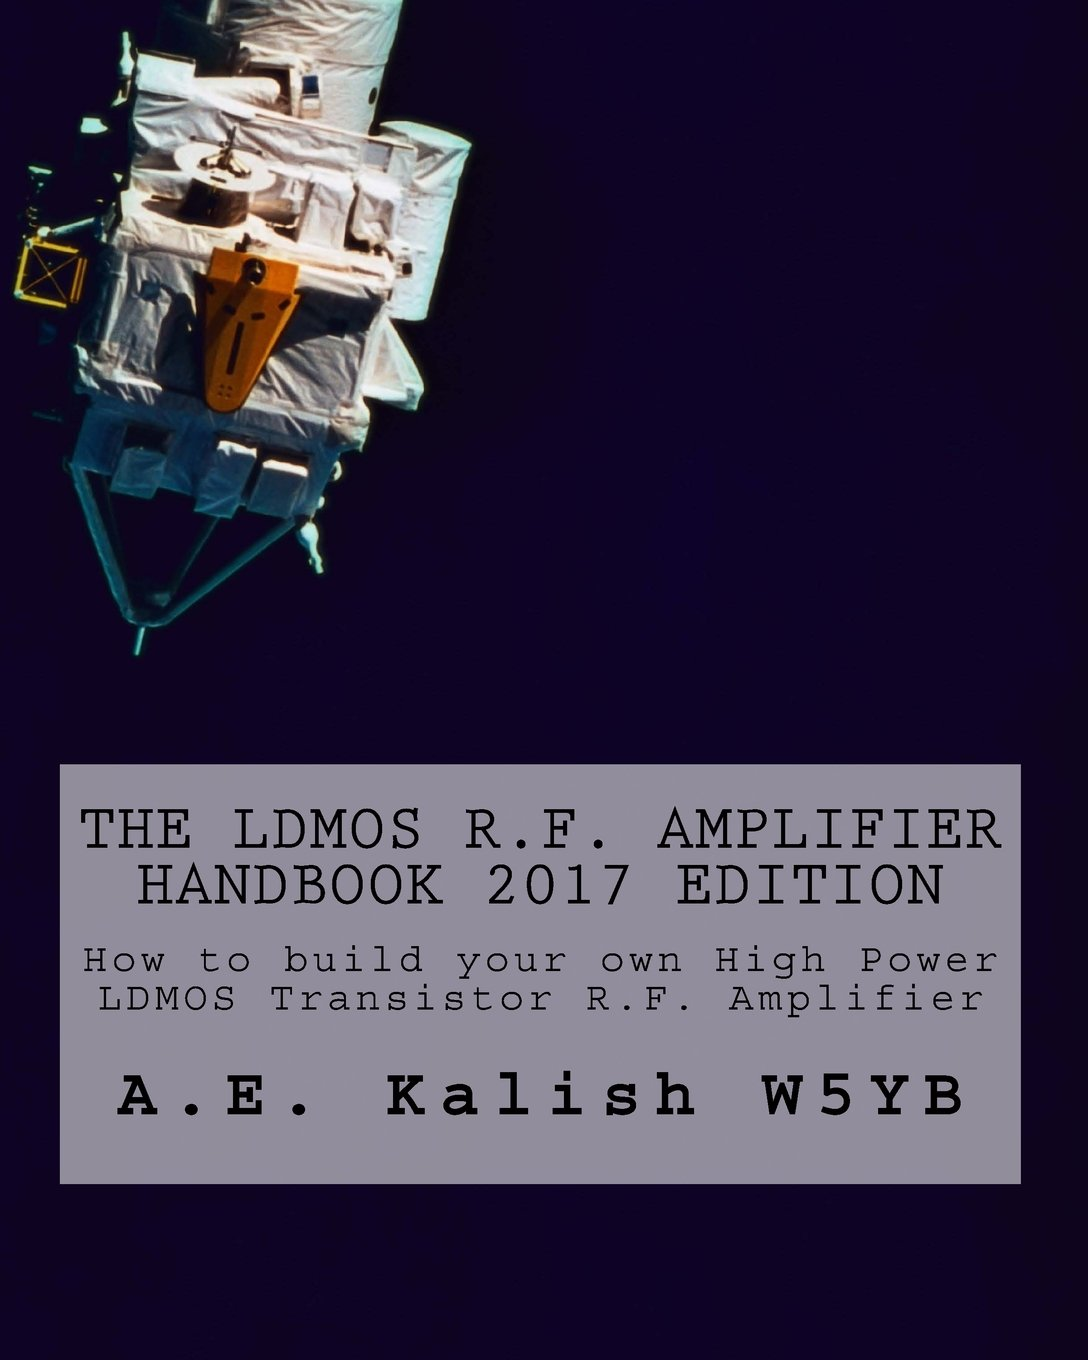 The LDMOS R F  Amplifier Handbook: How to build your own